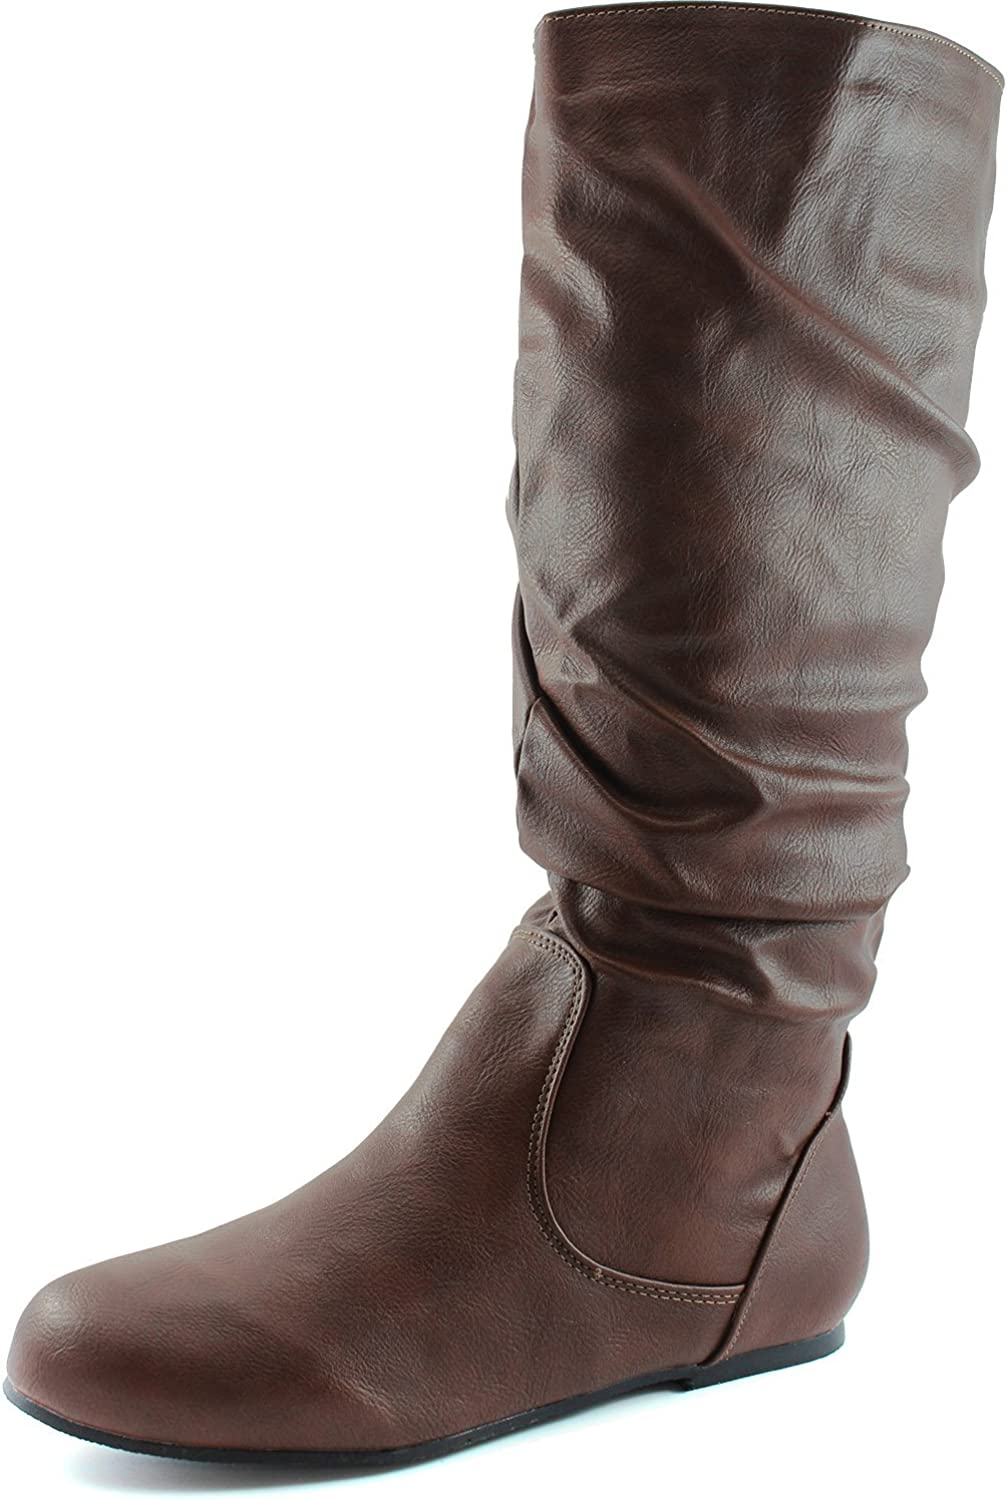 DailyShoes Women's Mid Calf Zipper Slouch Suede Comfortable Boot